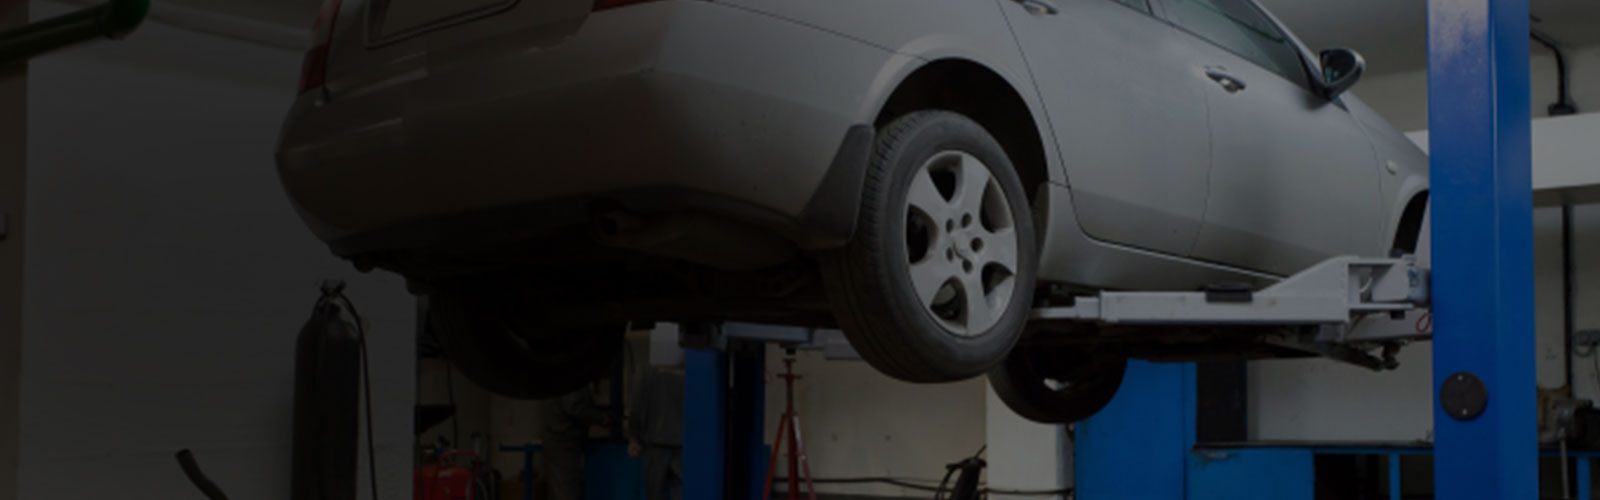 We offer a broad range of services to get your car back on the road!